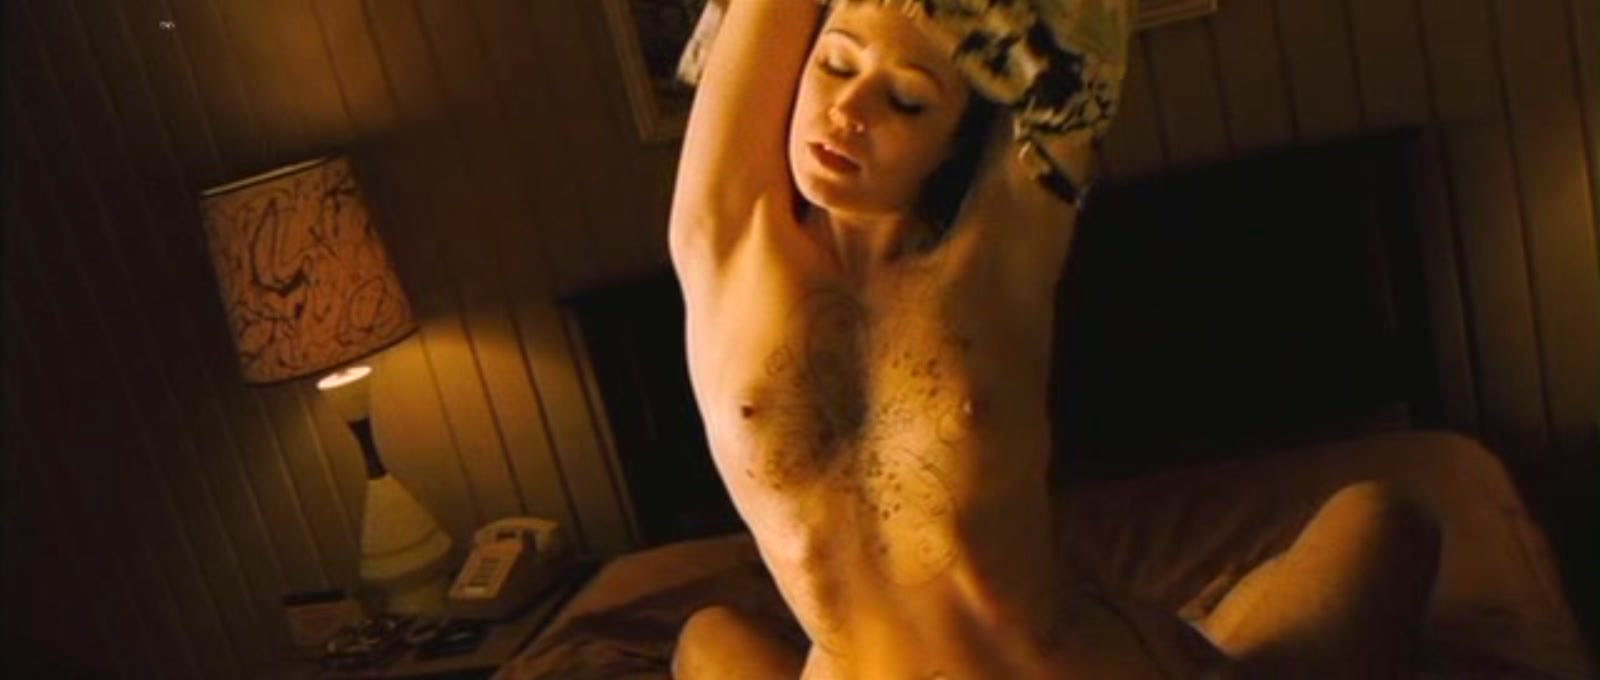 autumn reeser having sex nude